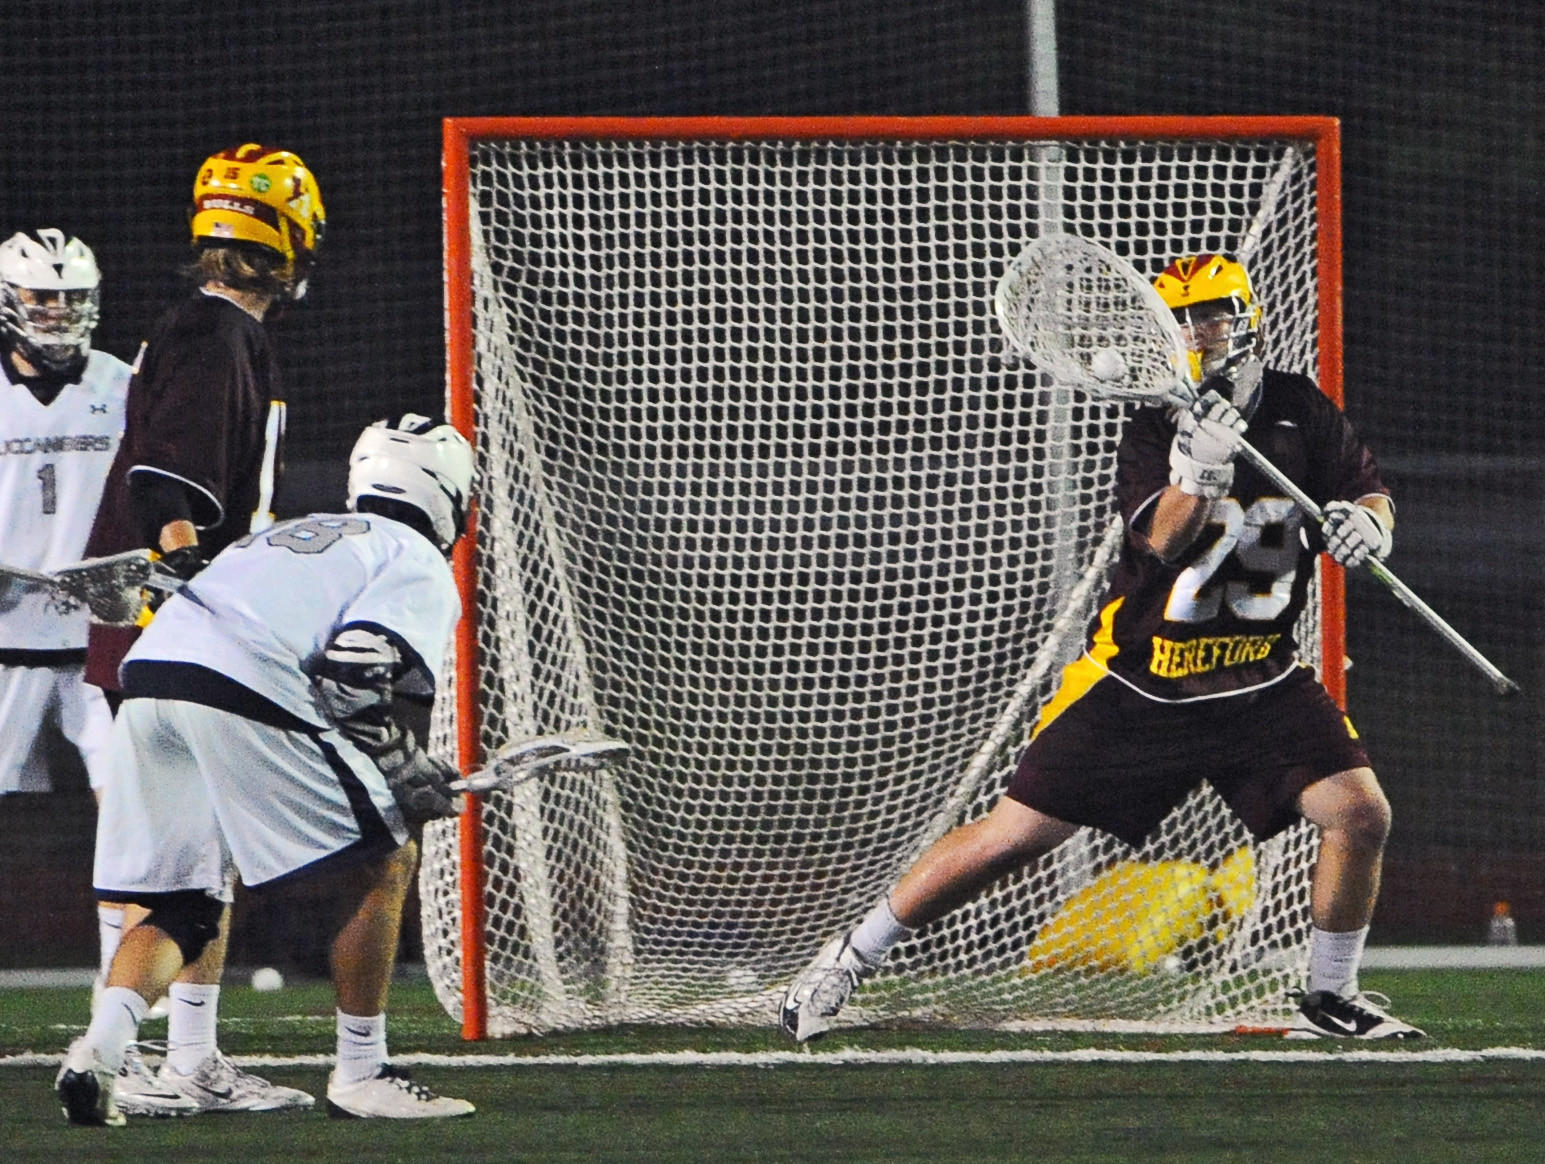 Hereford goalie Brock Turnbaugh, right, makes a save on a shot by Kent Island's Patrick Garvey, third to the left, in the third quarter.